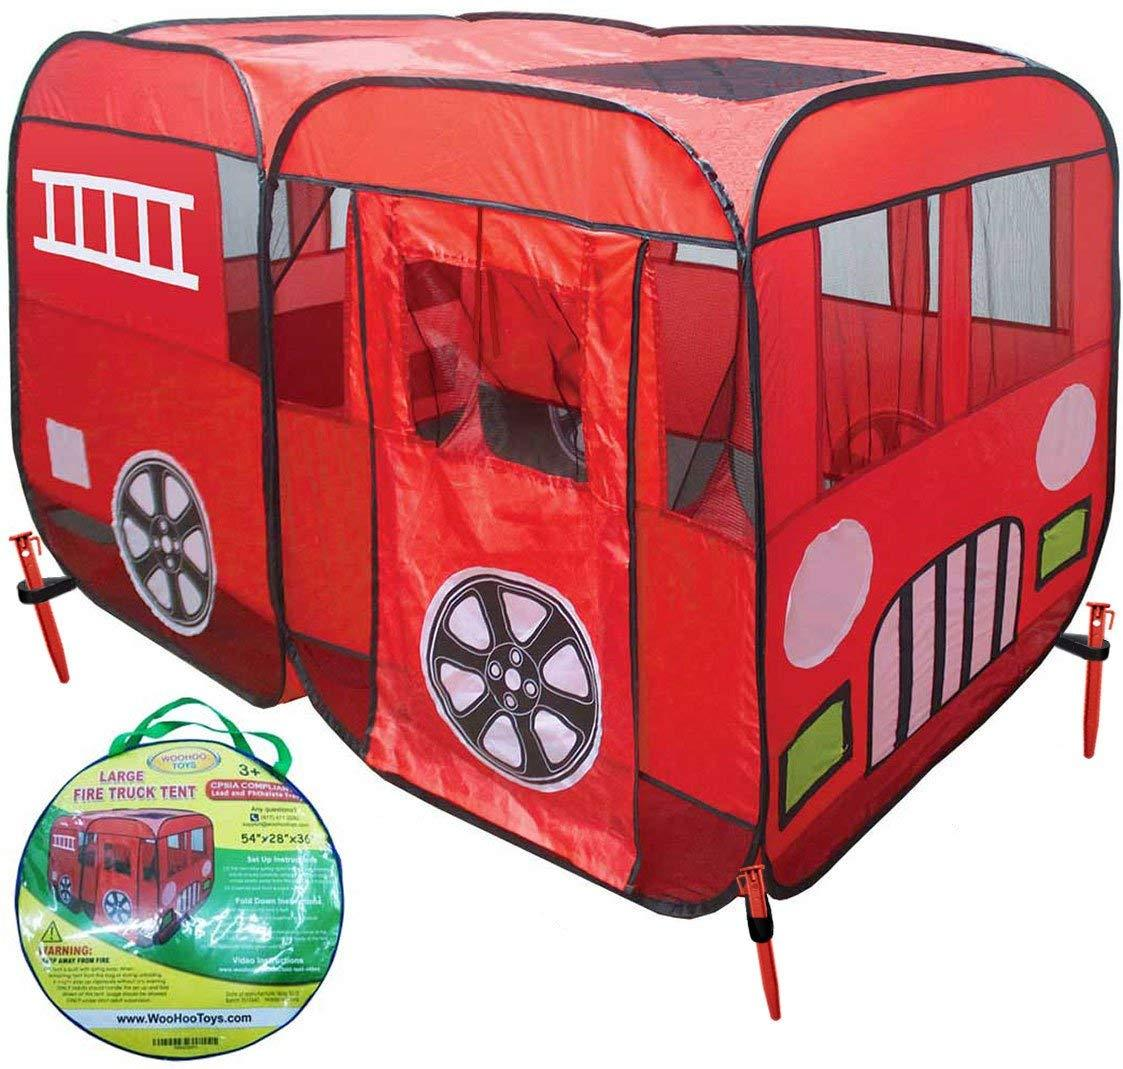 separation shoes 96a88 07f11 Large Children Fire Engine Truck Pop-Up Playhouse Play Tent (with No-Step)  at Front Door for Easy Access of Toddlers Boys Girls Kids to Pretend